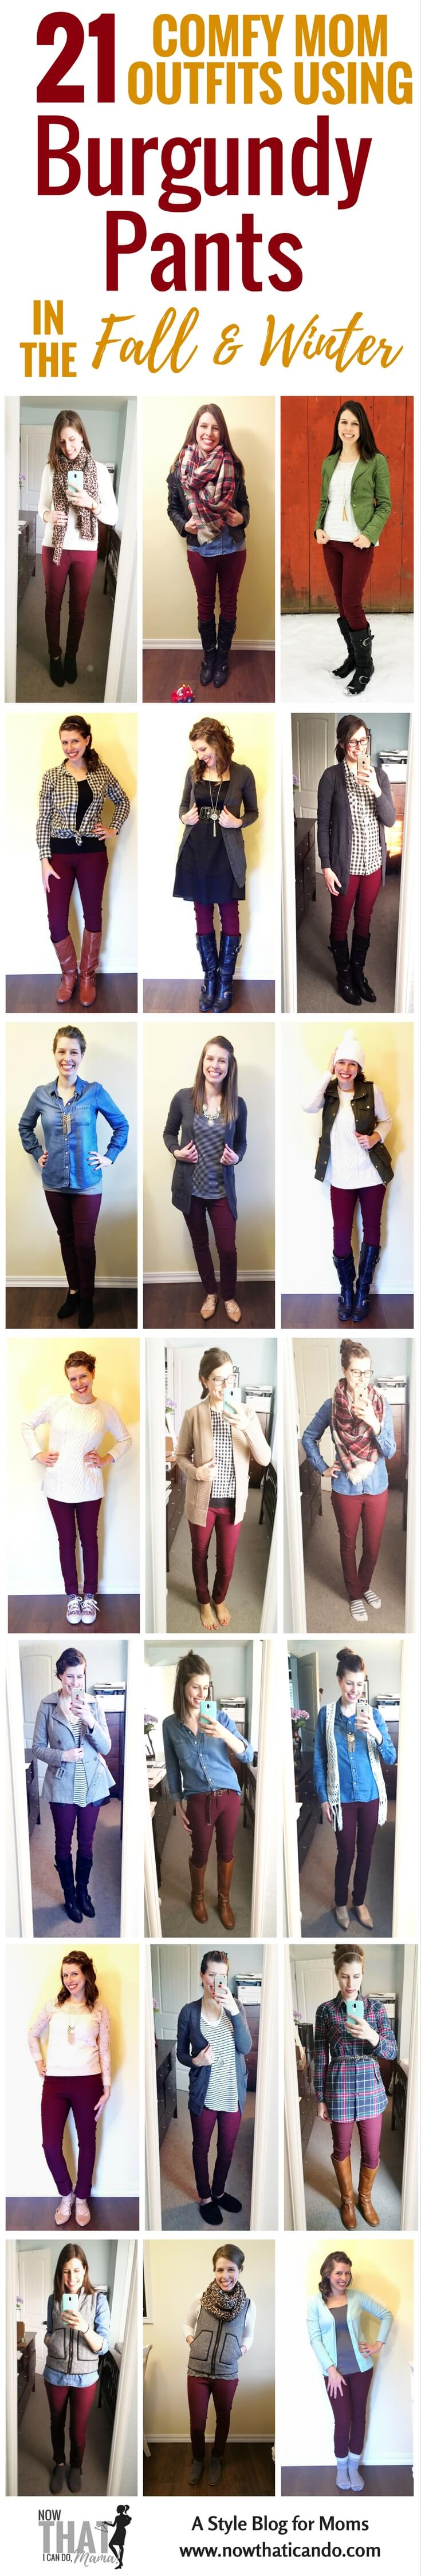 Are you a #mom and don't know what to wear with your wine #burgundy #pants? Here are 21 outfit ideas including infographics on colors, patterns, and shoes to style maroon/burgundy pants. Written with moms in mind! The blog post has lots of examples and gives this printable cheat sheet download for free! #style #outfits #winter #fall